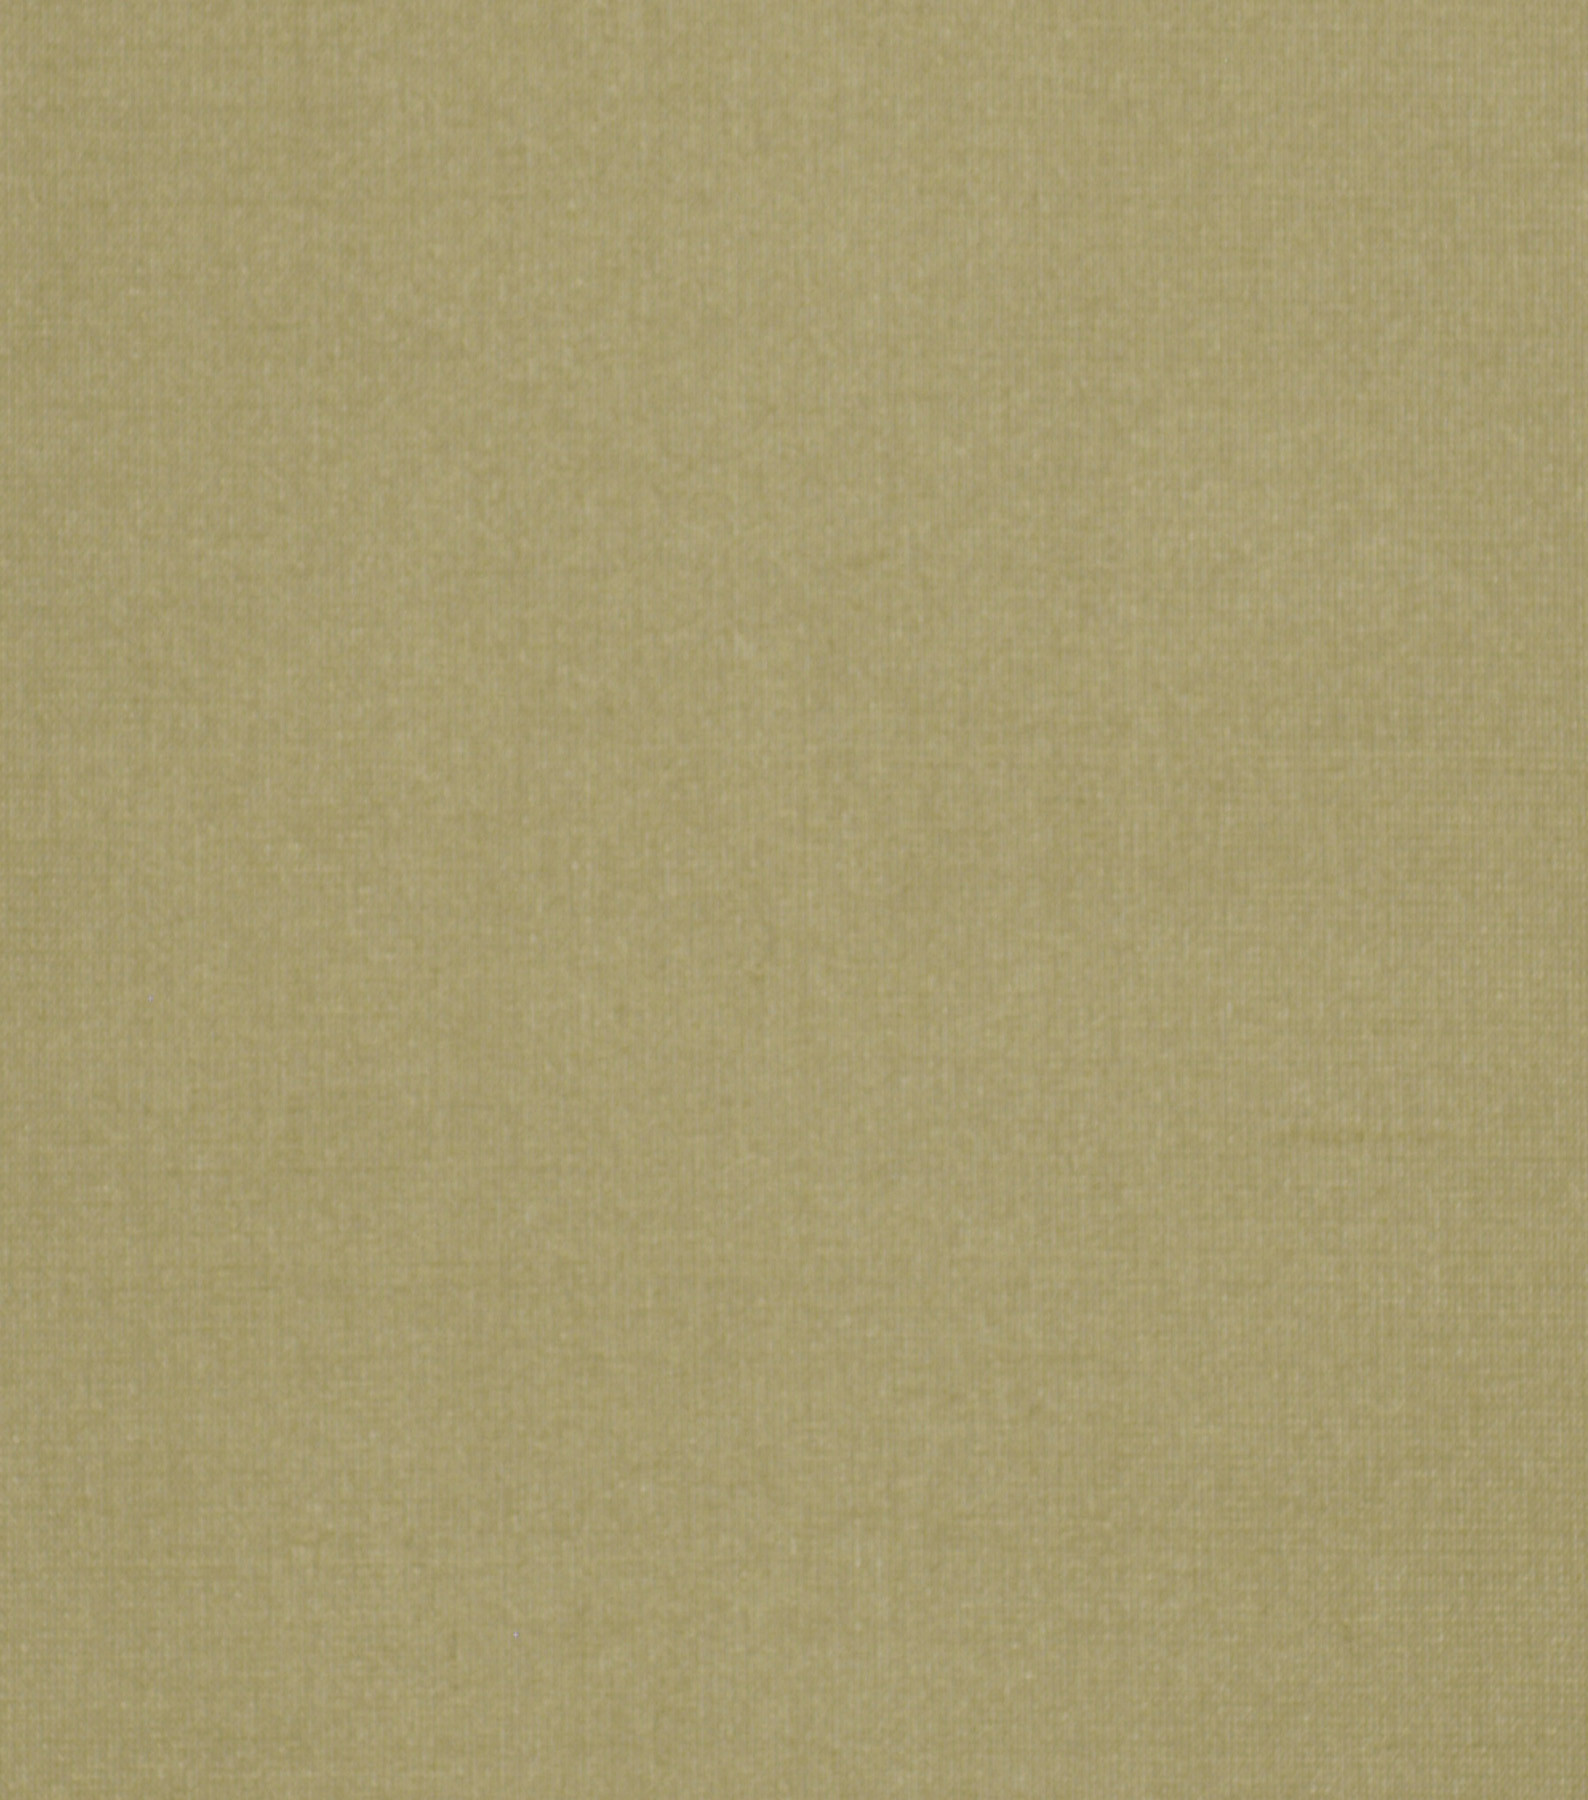 Home Decor 8\u0022x8\u0022 Fabric Swatch-Solid Fabric Signature Series Kalin Moonglow